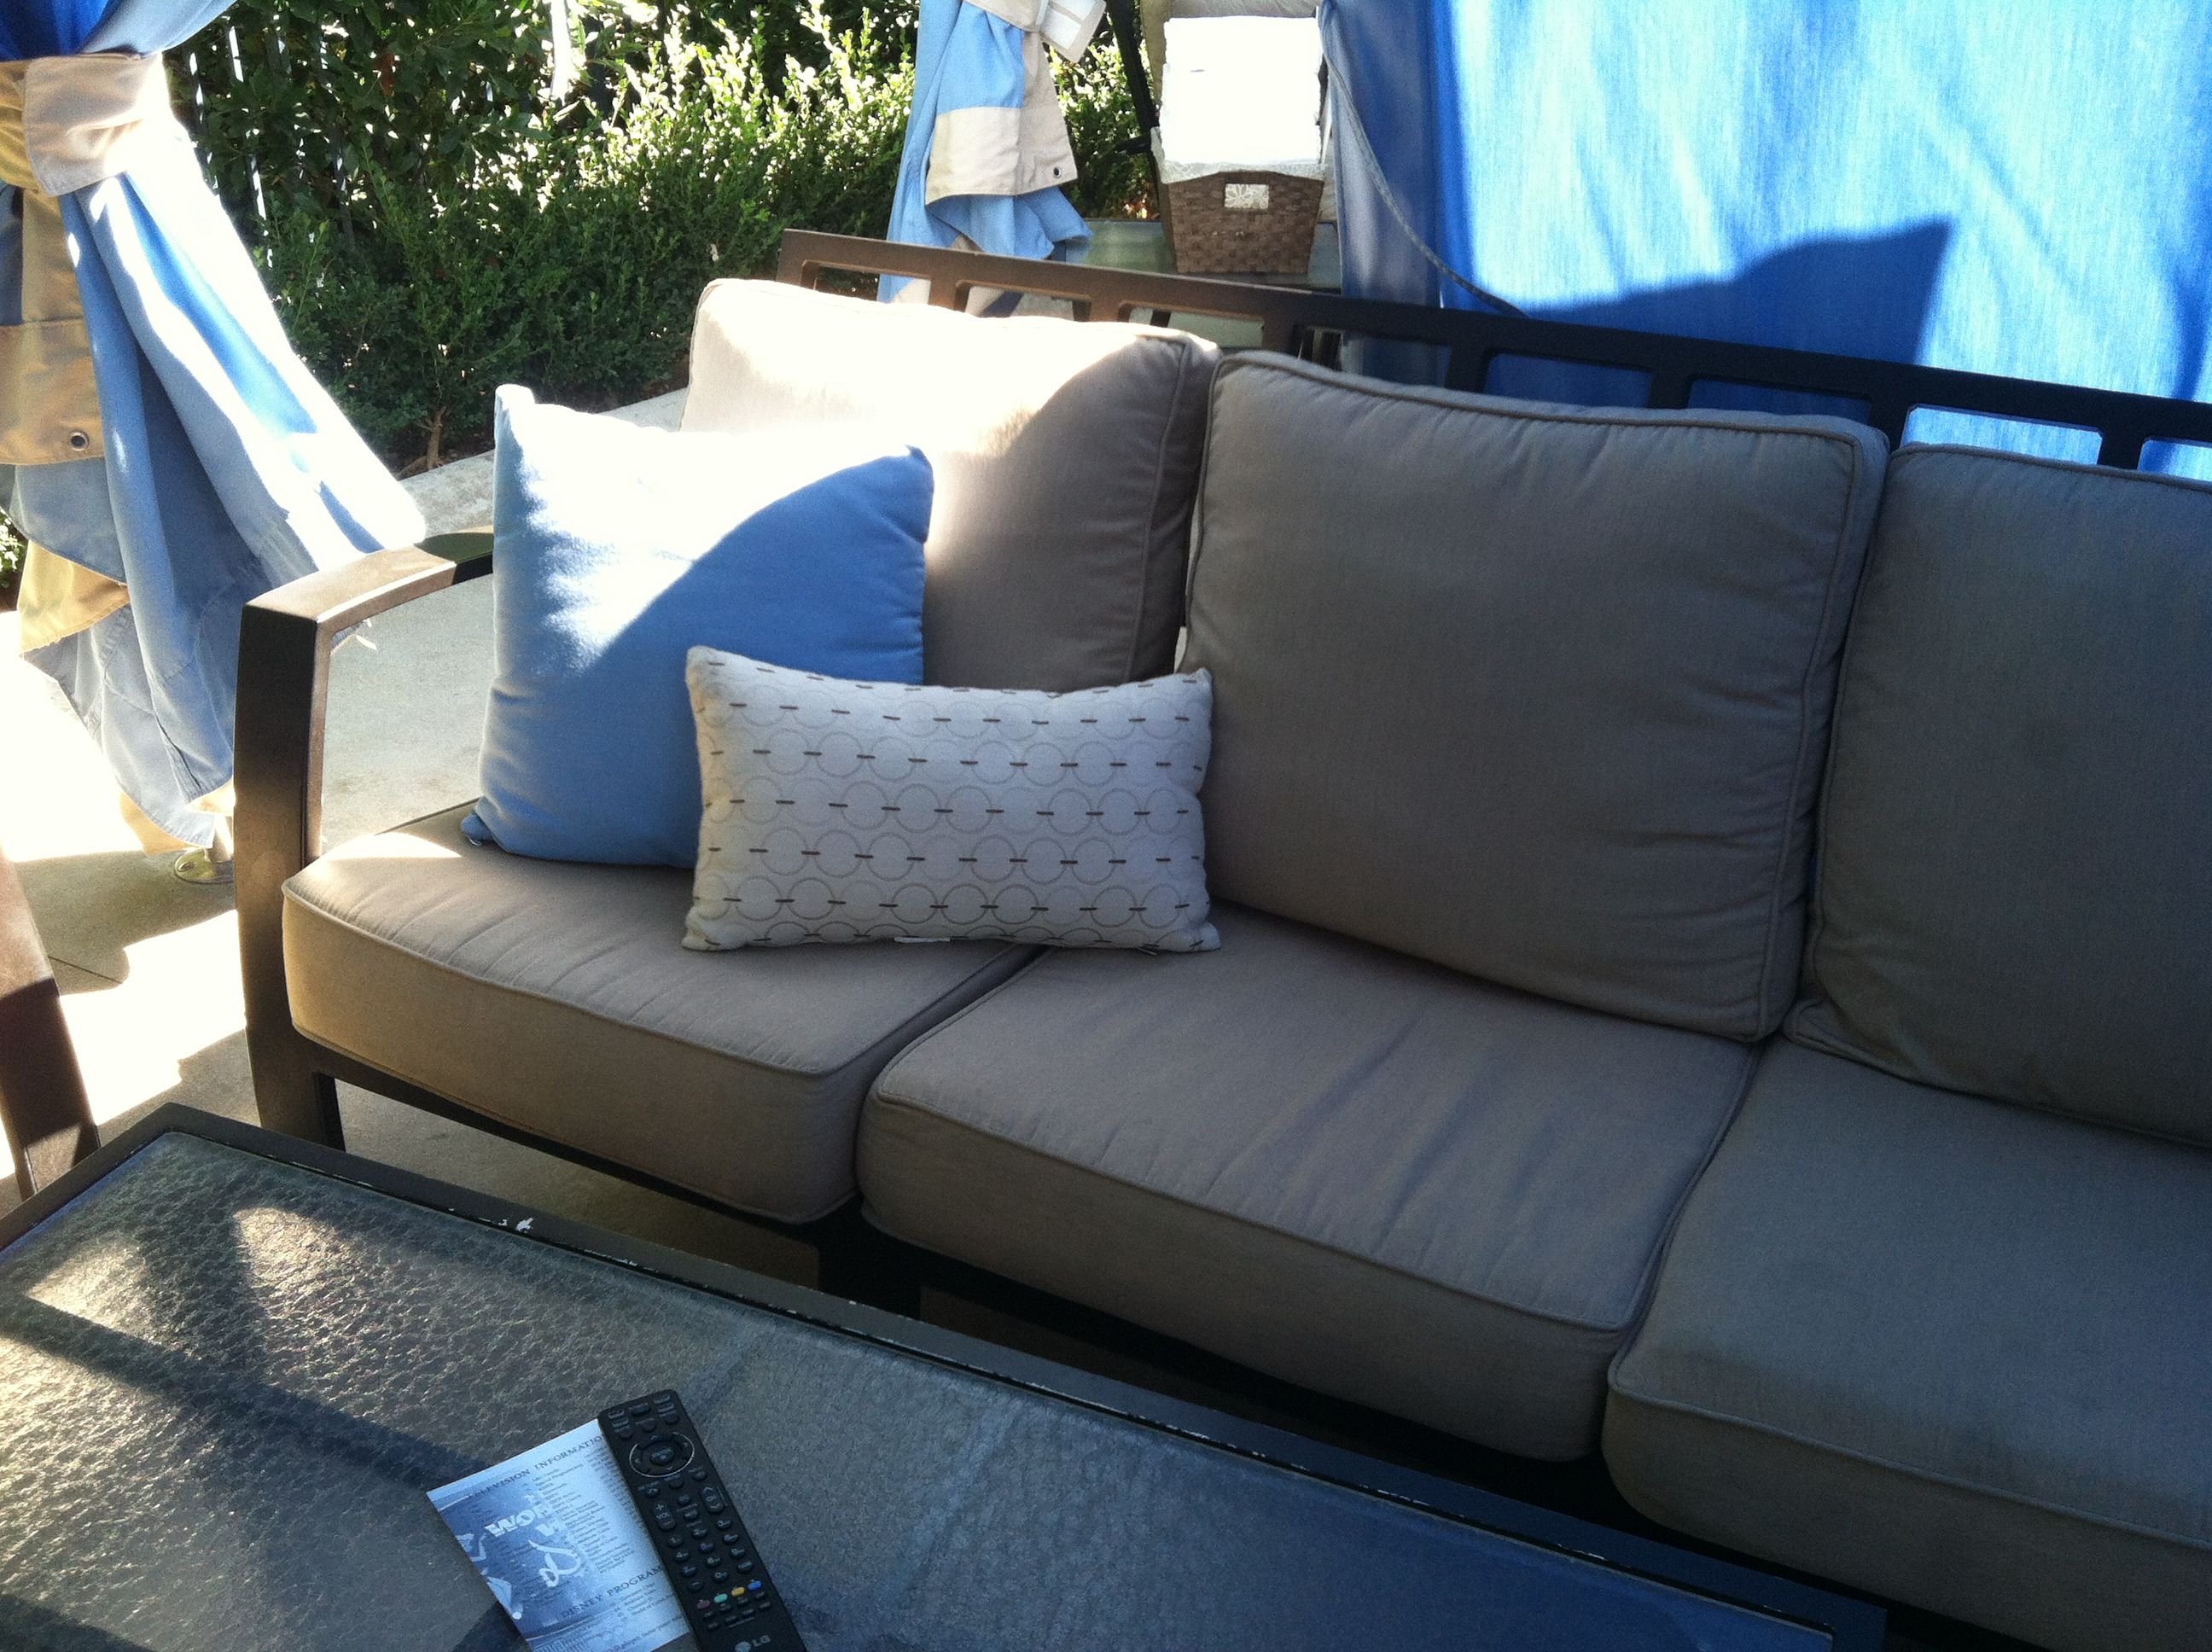 Big Sofa Cabana Poolside Cabana At The Disneyland Hotel Pool - Points And